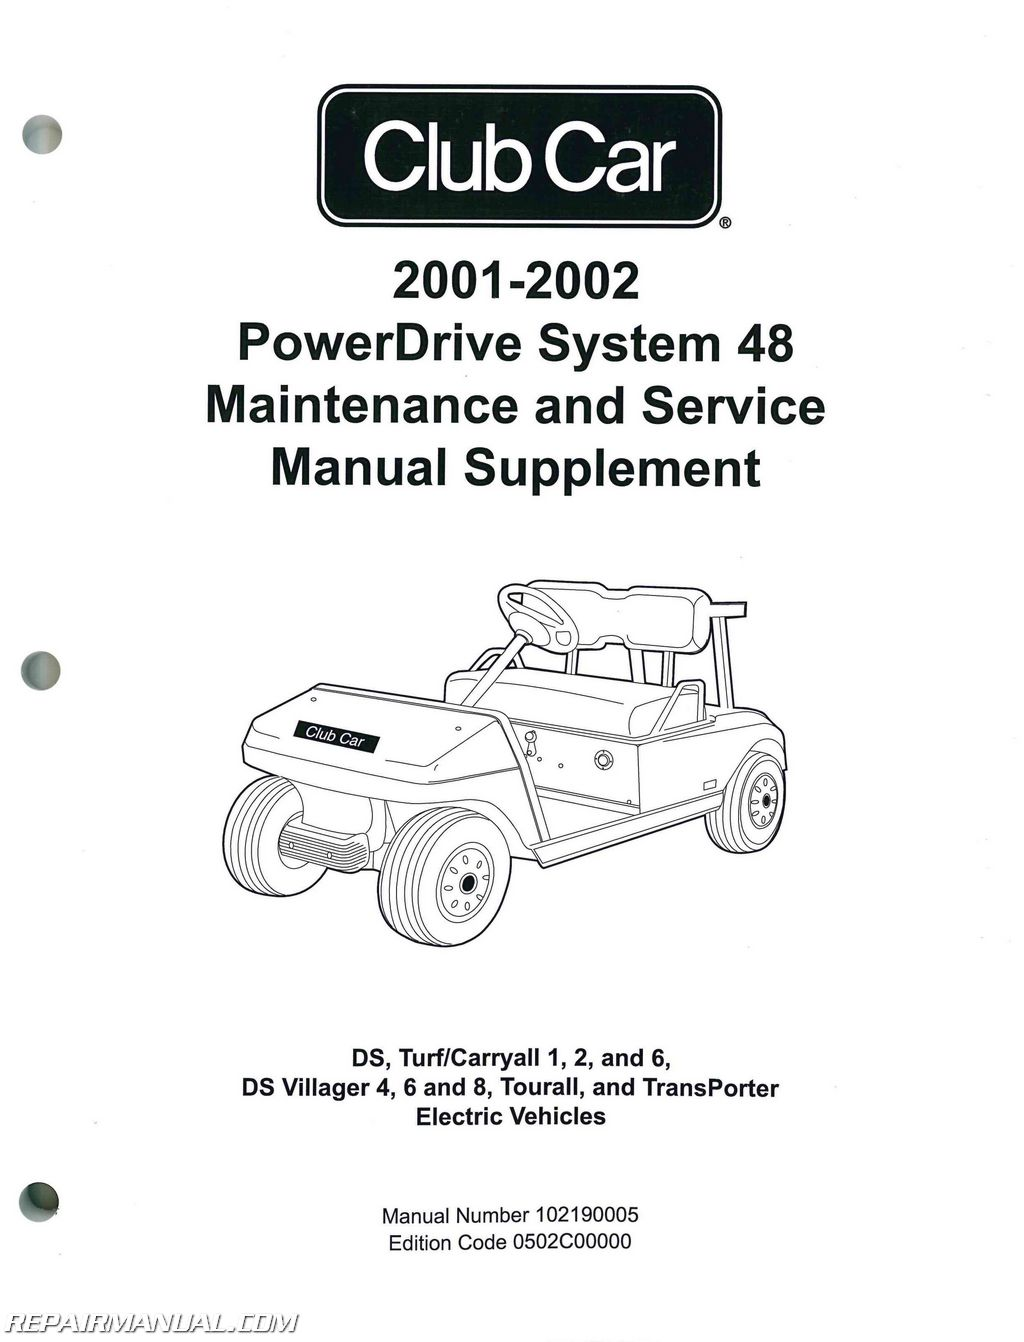 hight resolution of 2001 2002 club car powerdrive system 48 maintenance and service manual supplement jpg